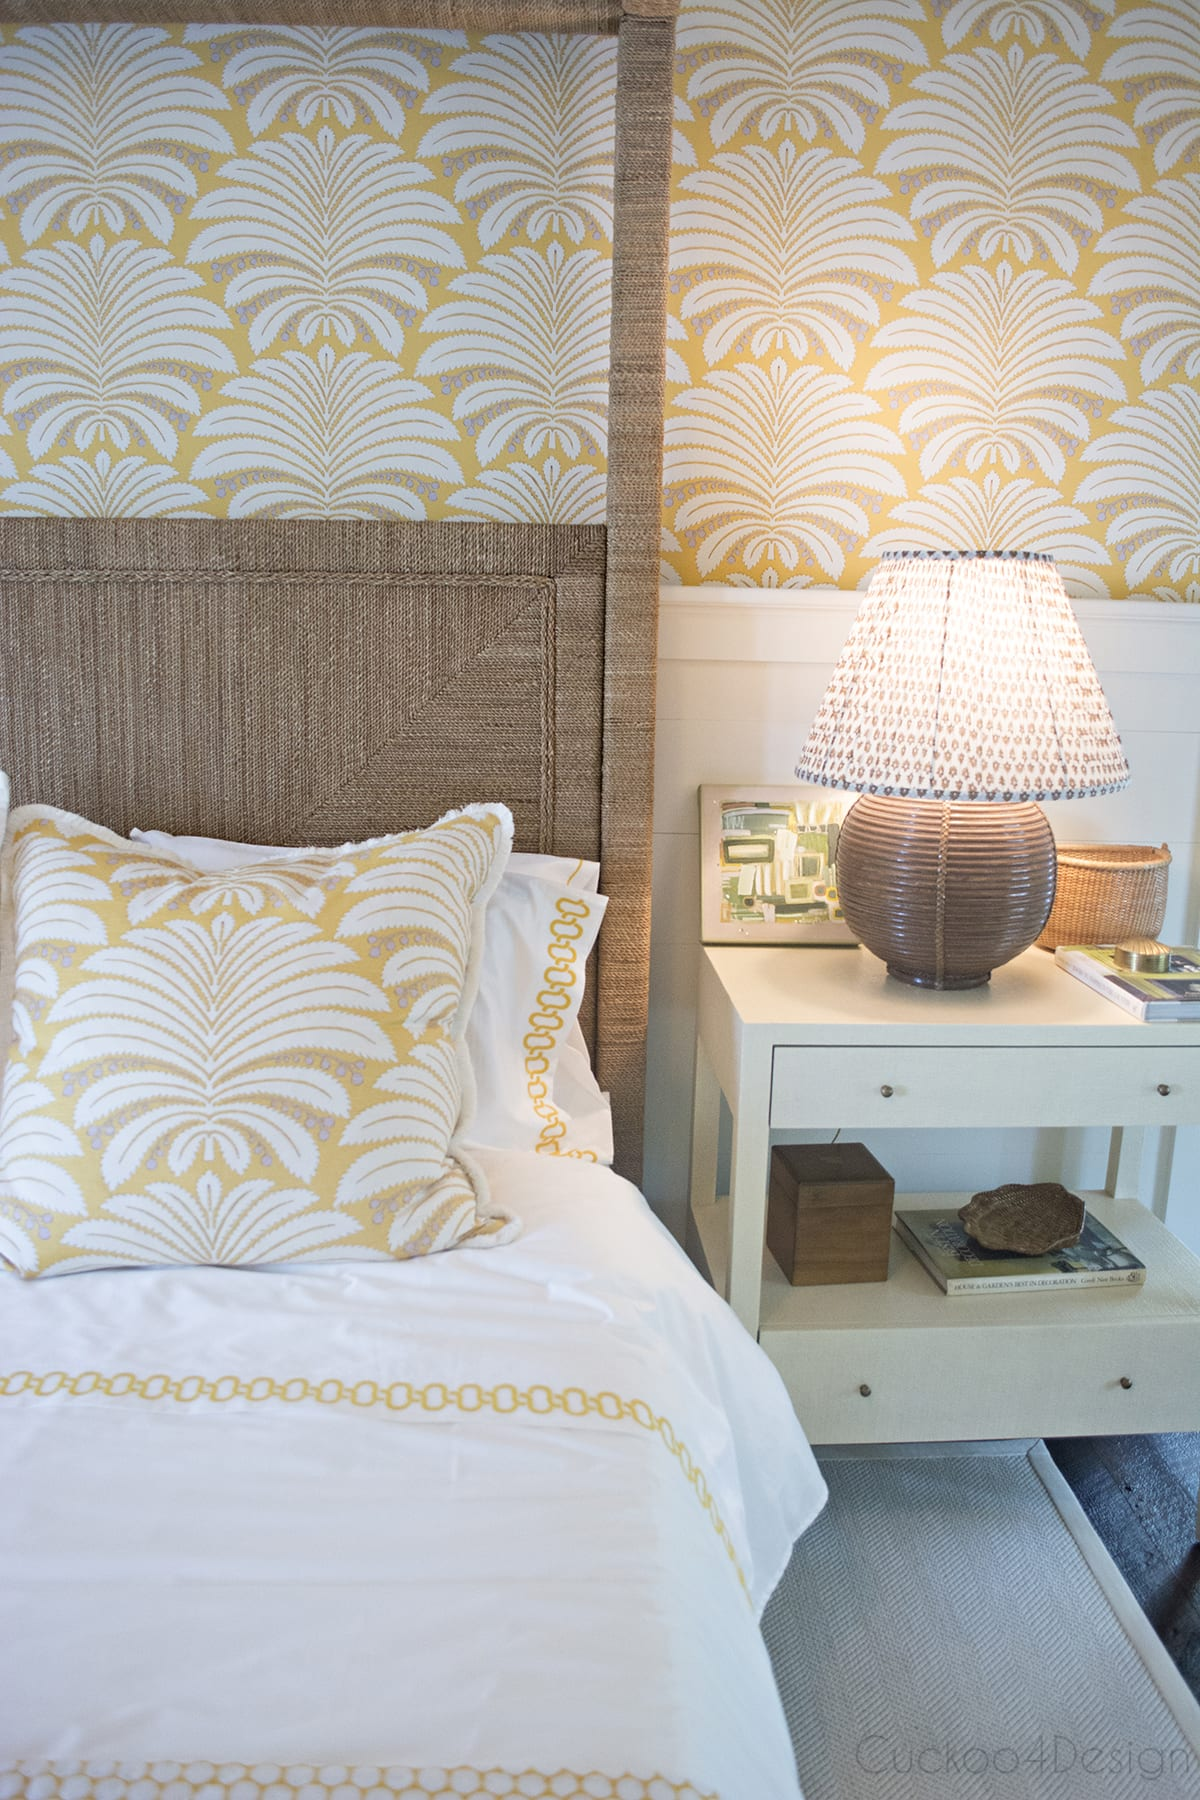 vintage whicker rattan canopy bed in master bedroom with Hines Palmyra in yellow wallpaper and fabric